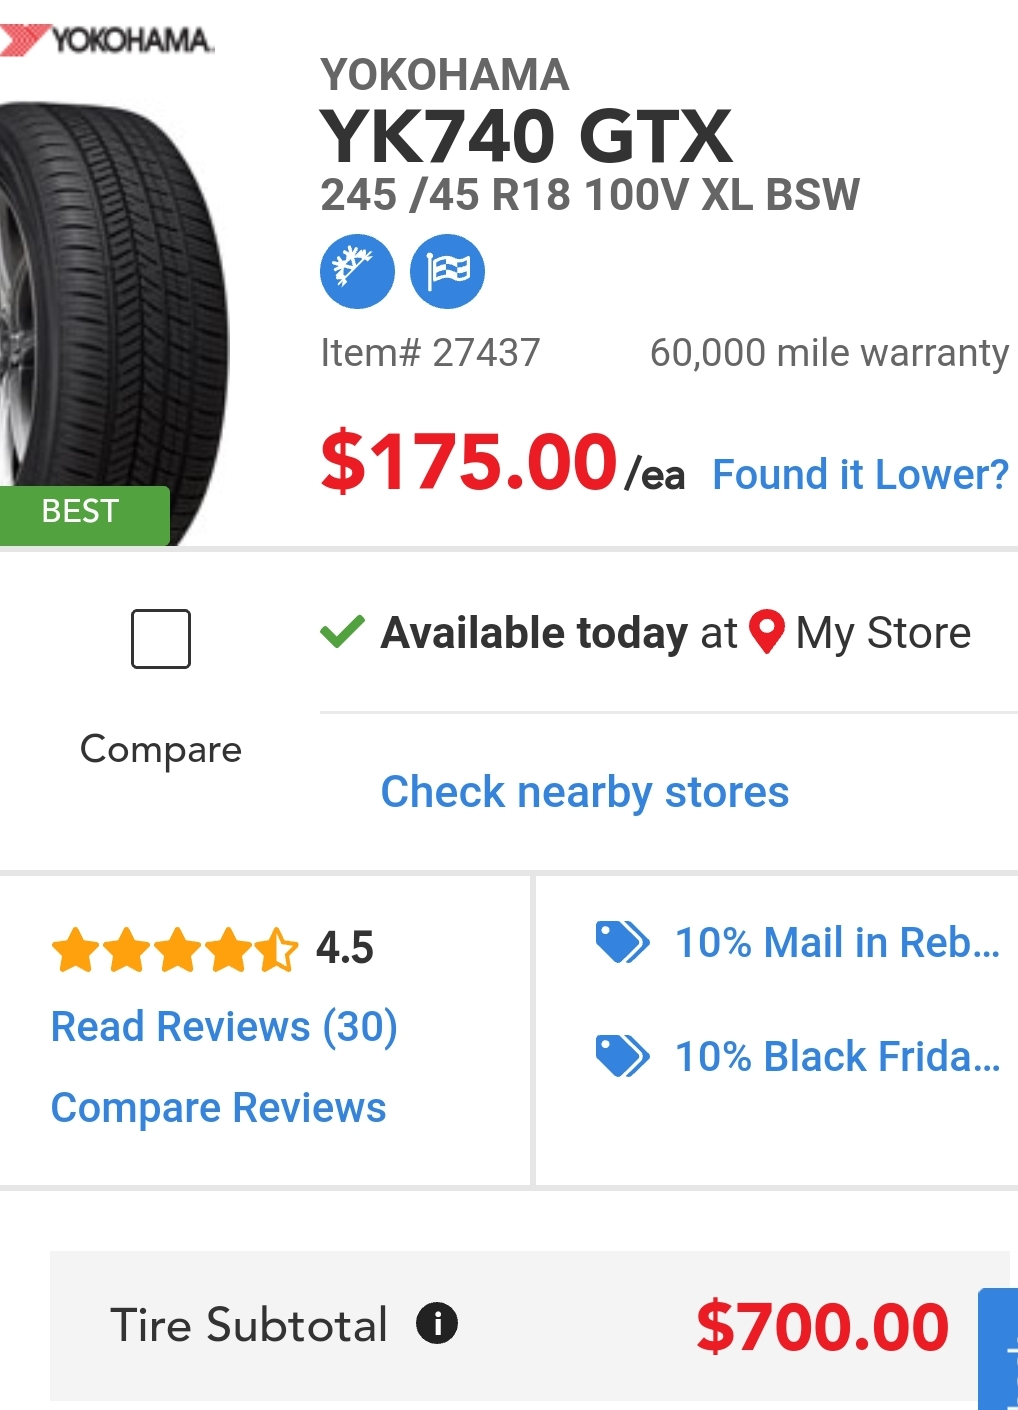 2007 Redline Tires-smartselect_20181123-060753_chrome_1542982938641.jpg